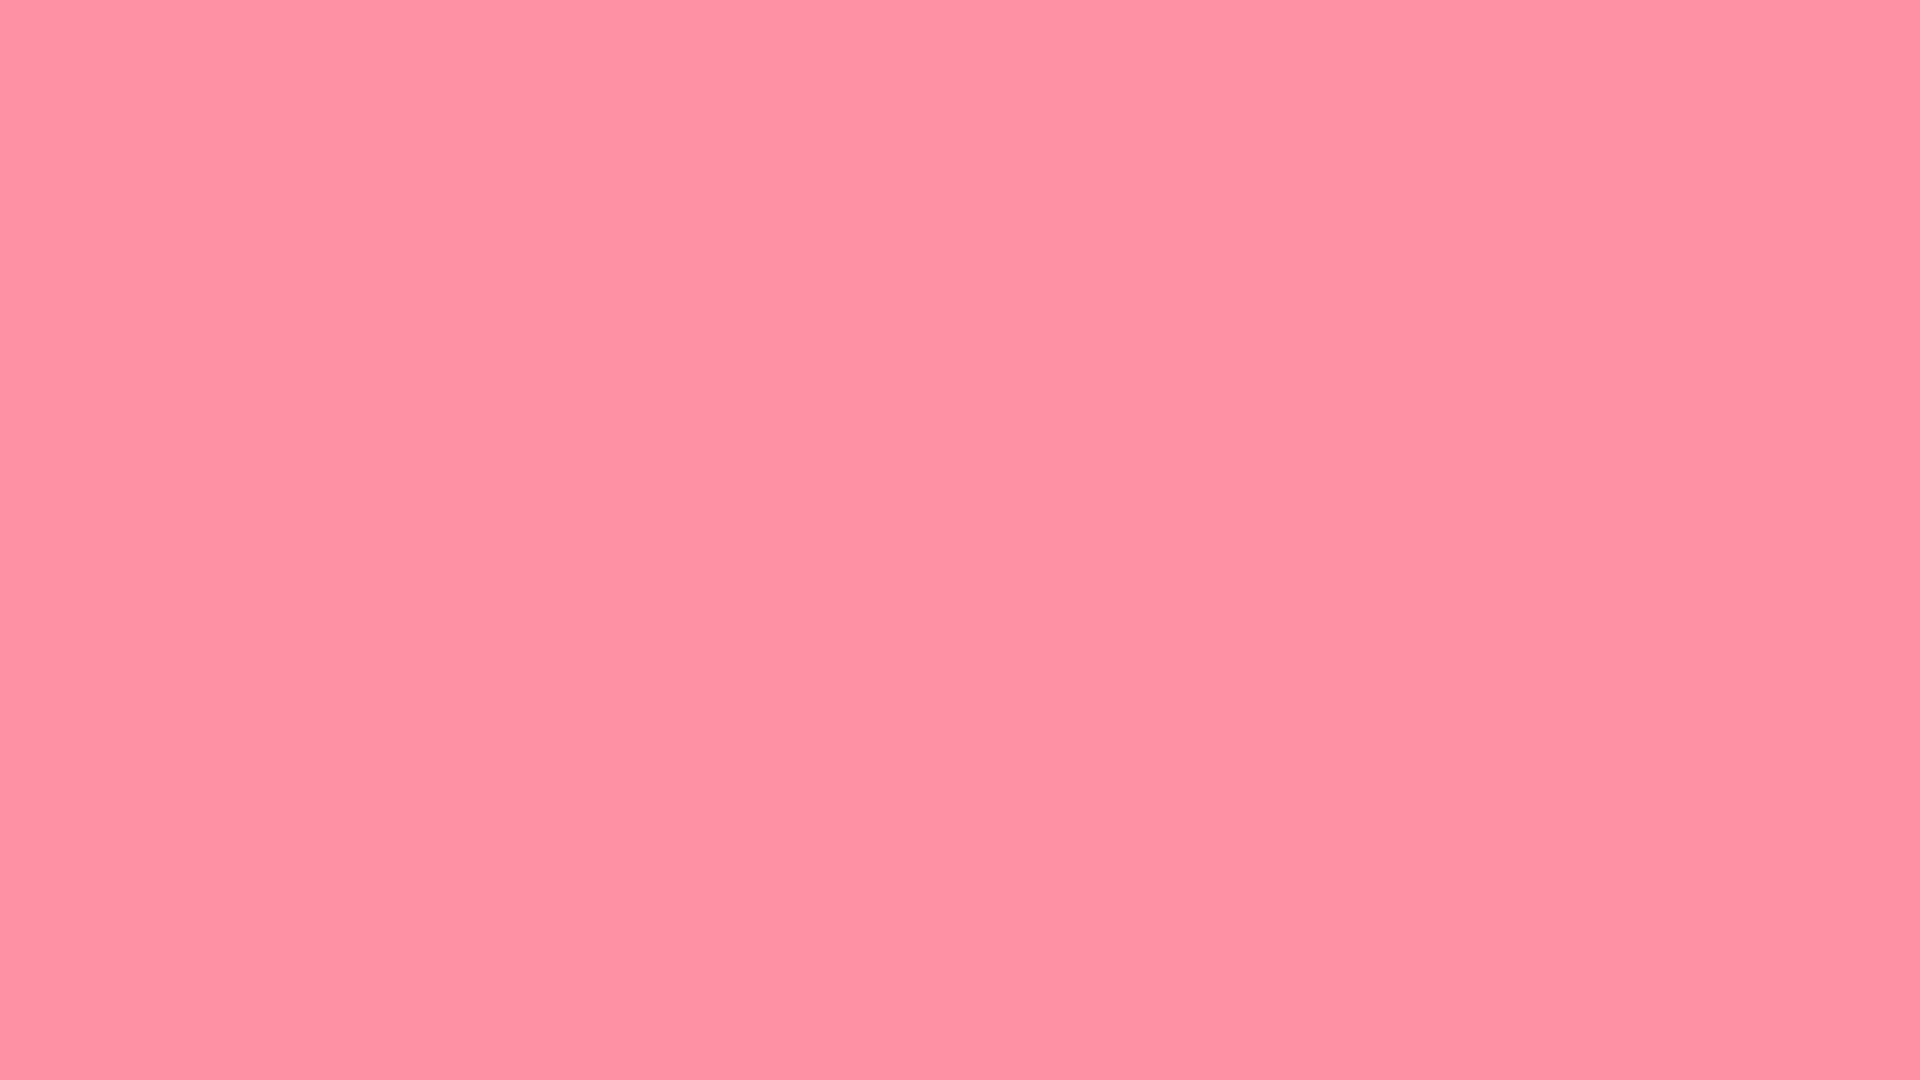 1920x1080 Salmon Pink Solid Color Background